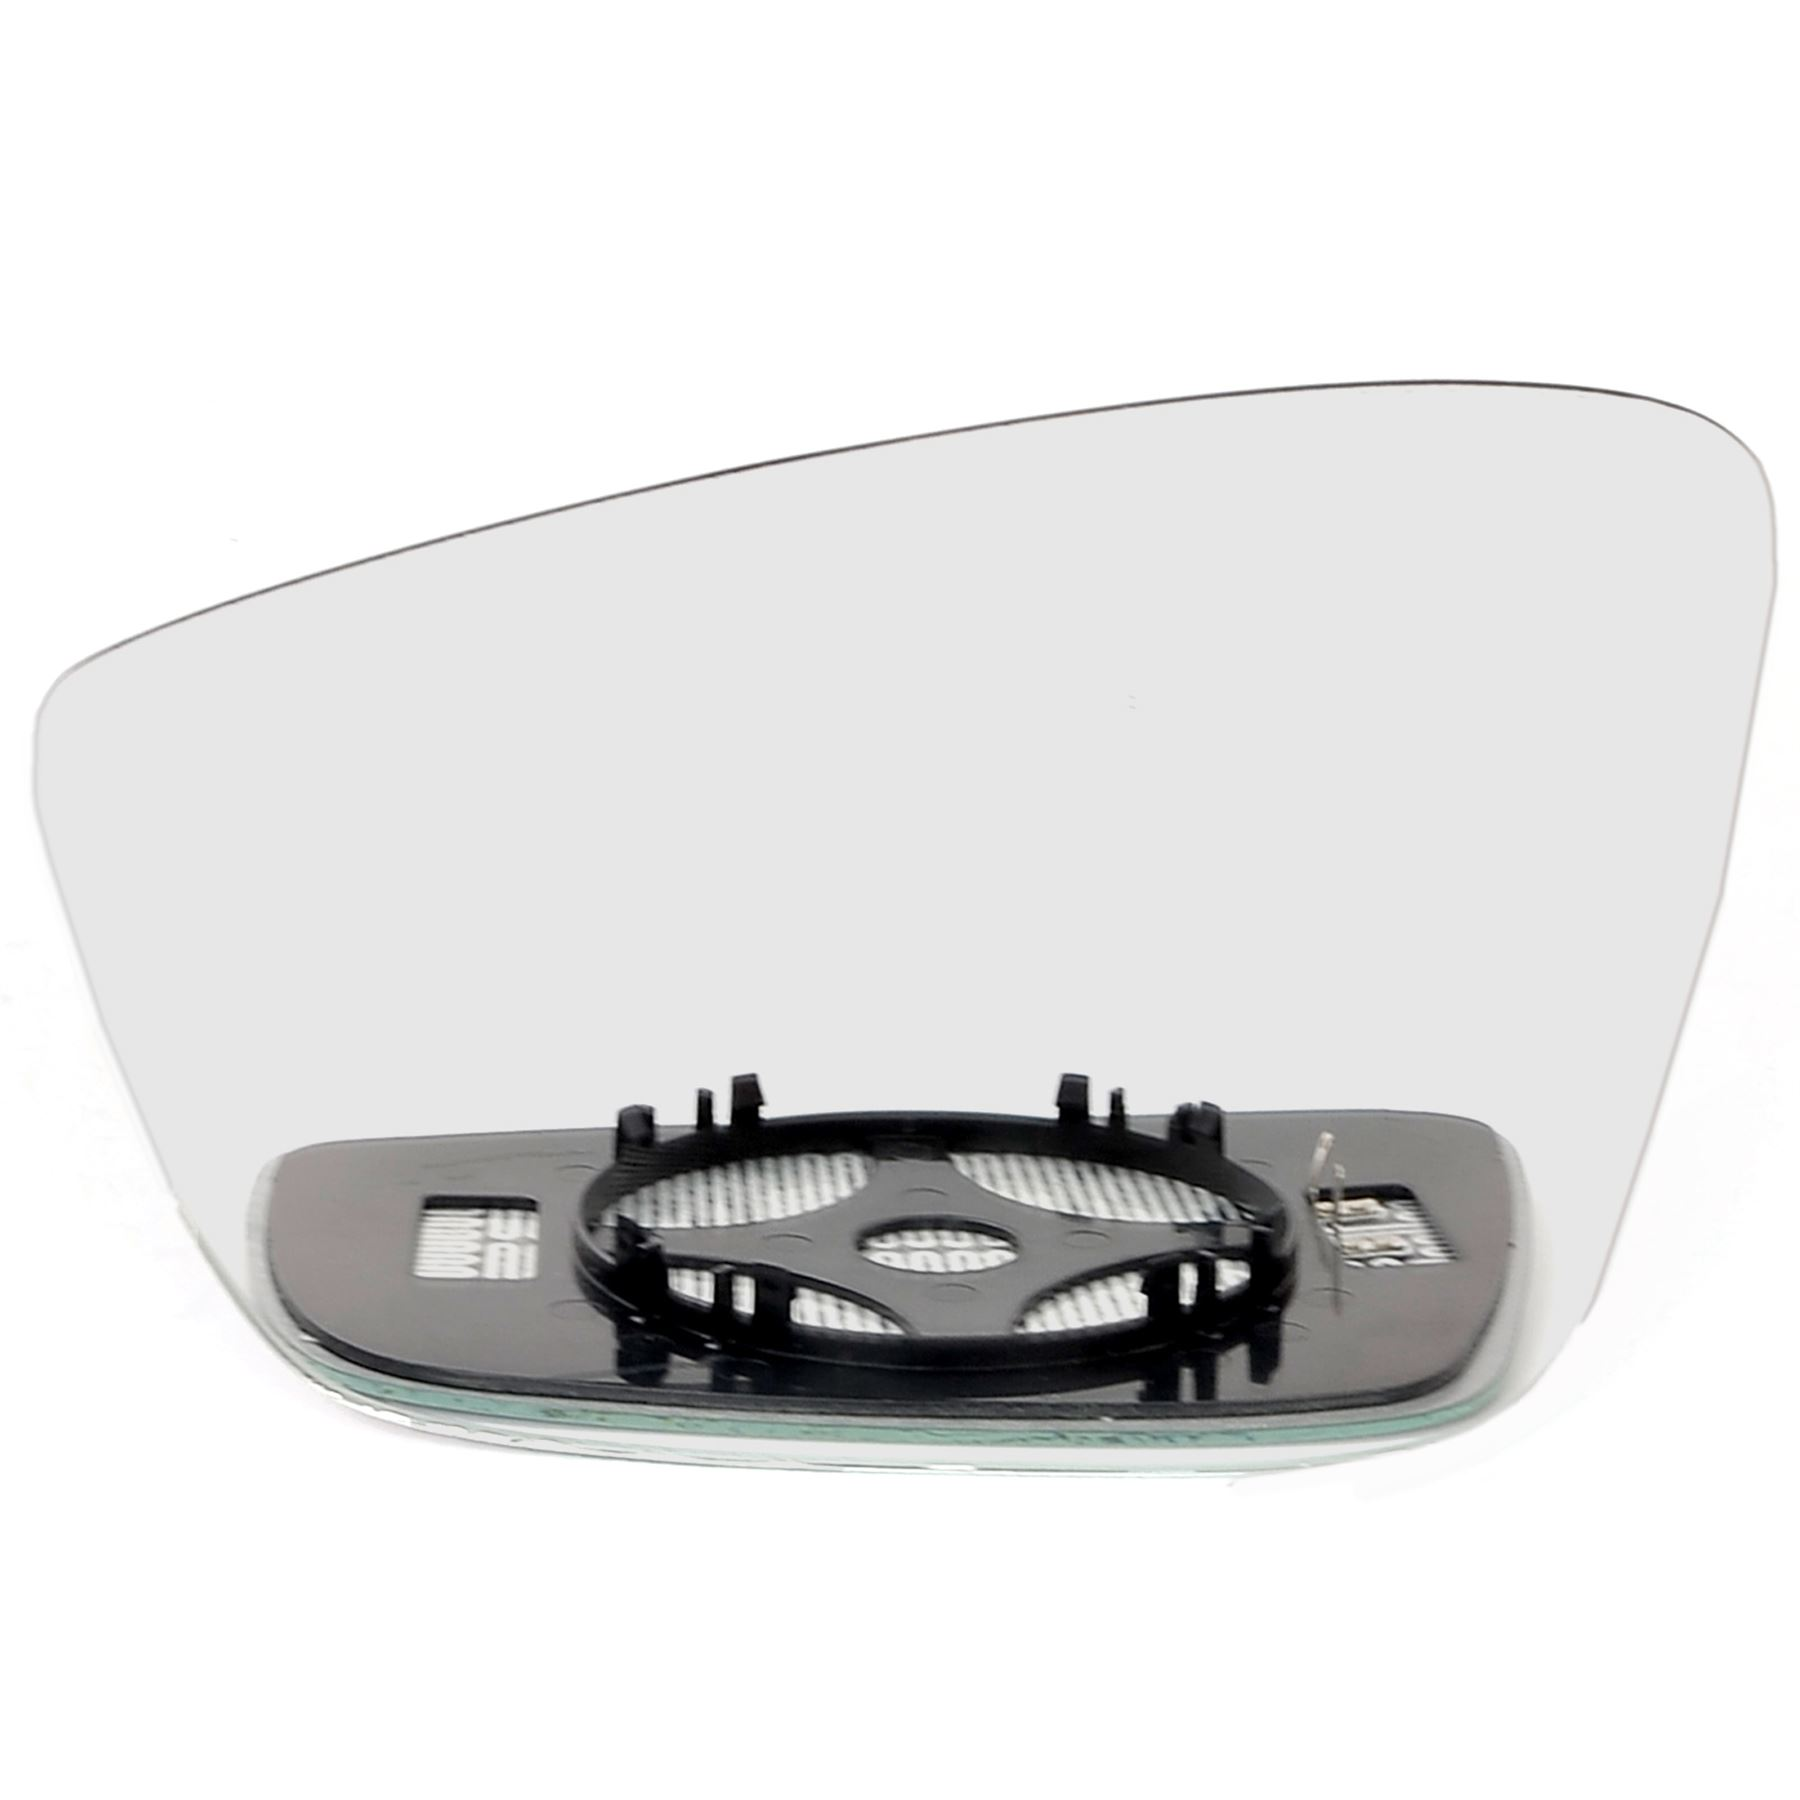 SKODA FABIA VRS 99-07 WING MIRROR GLASS BLUE WIDE ANGLE HEAT+PLATE RIGHT OR LEFT